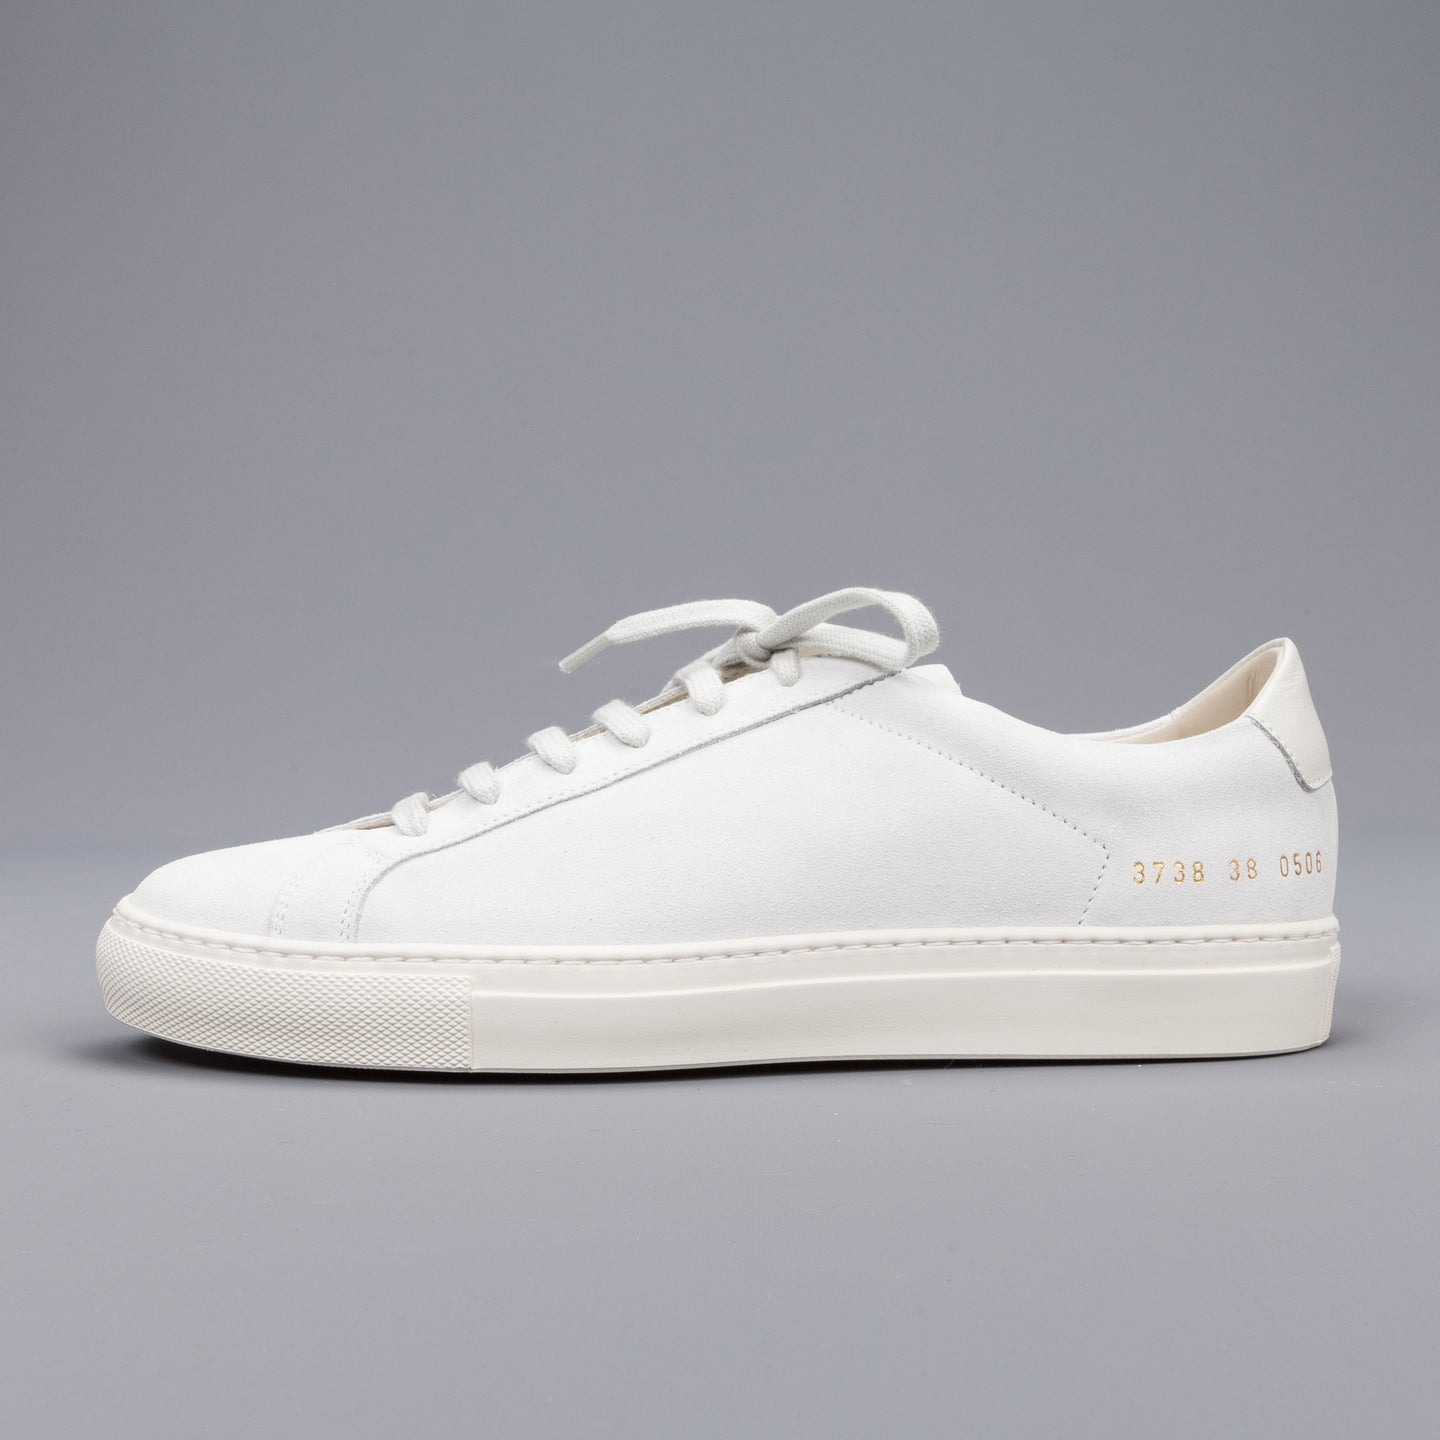 Grey and White Original Achilles Low Premium Sneakers Common Projects uelgxTY0